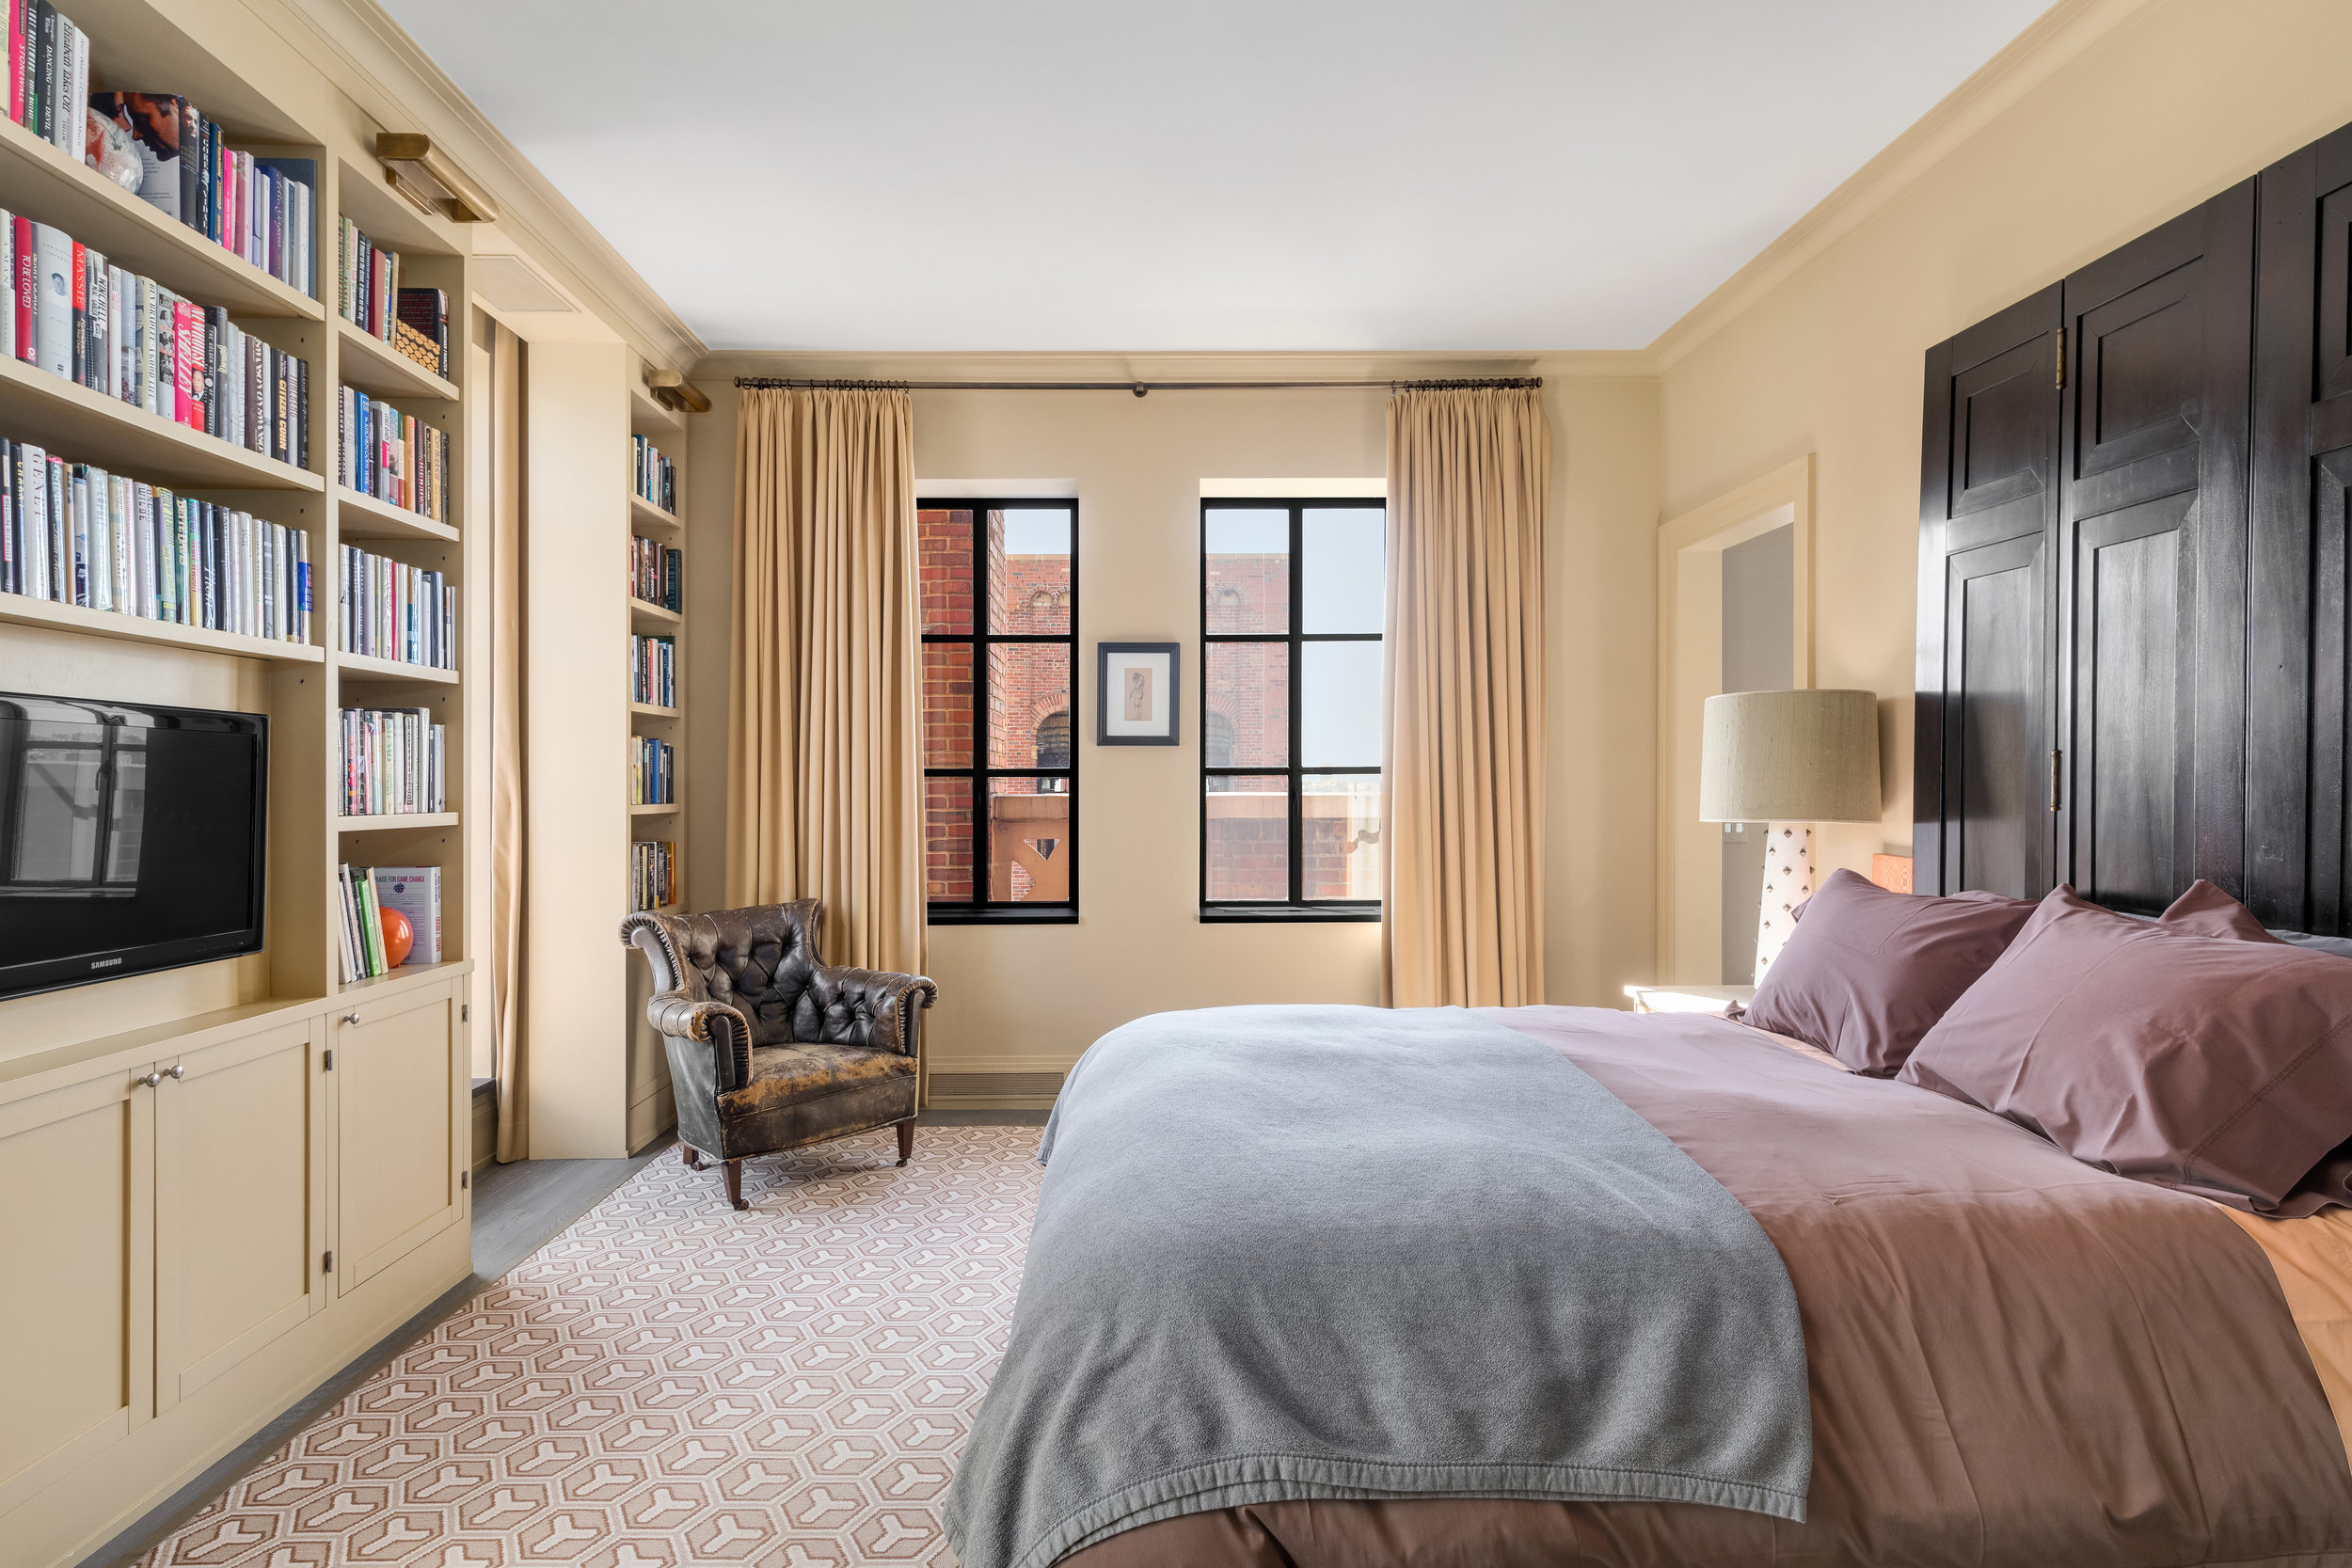 KCD Co-Chairman & Former Barneys CEO Lists Chelsea Penthouse At 410 West 24th Street With Fredrick Eklund & John Gomes